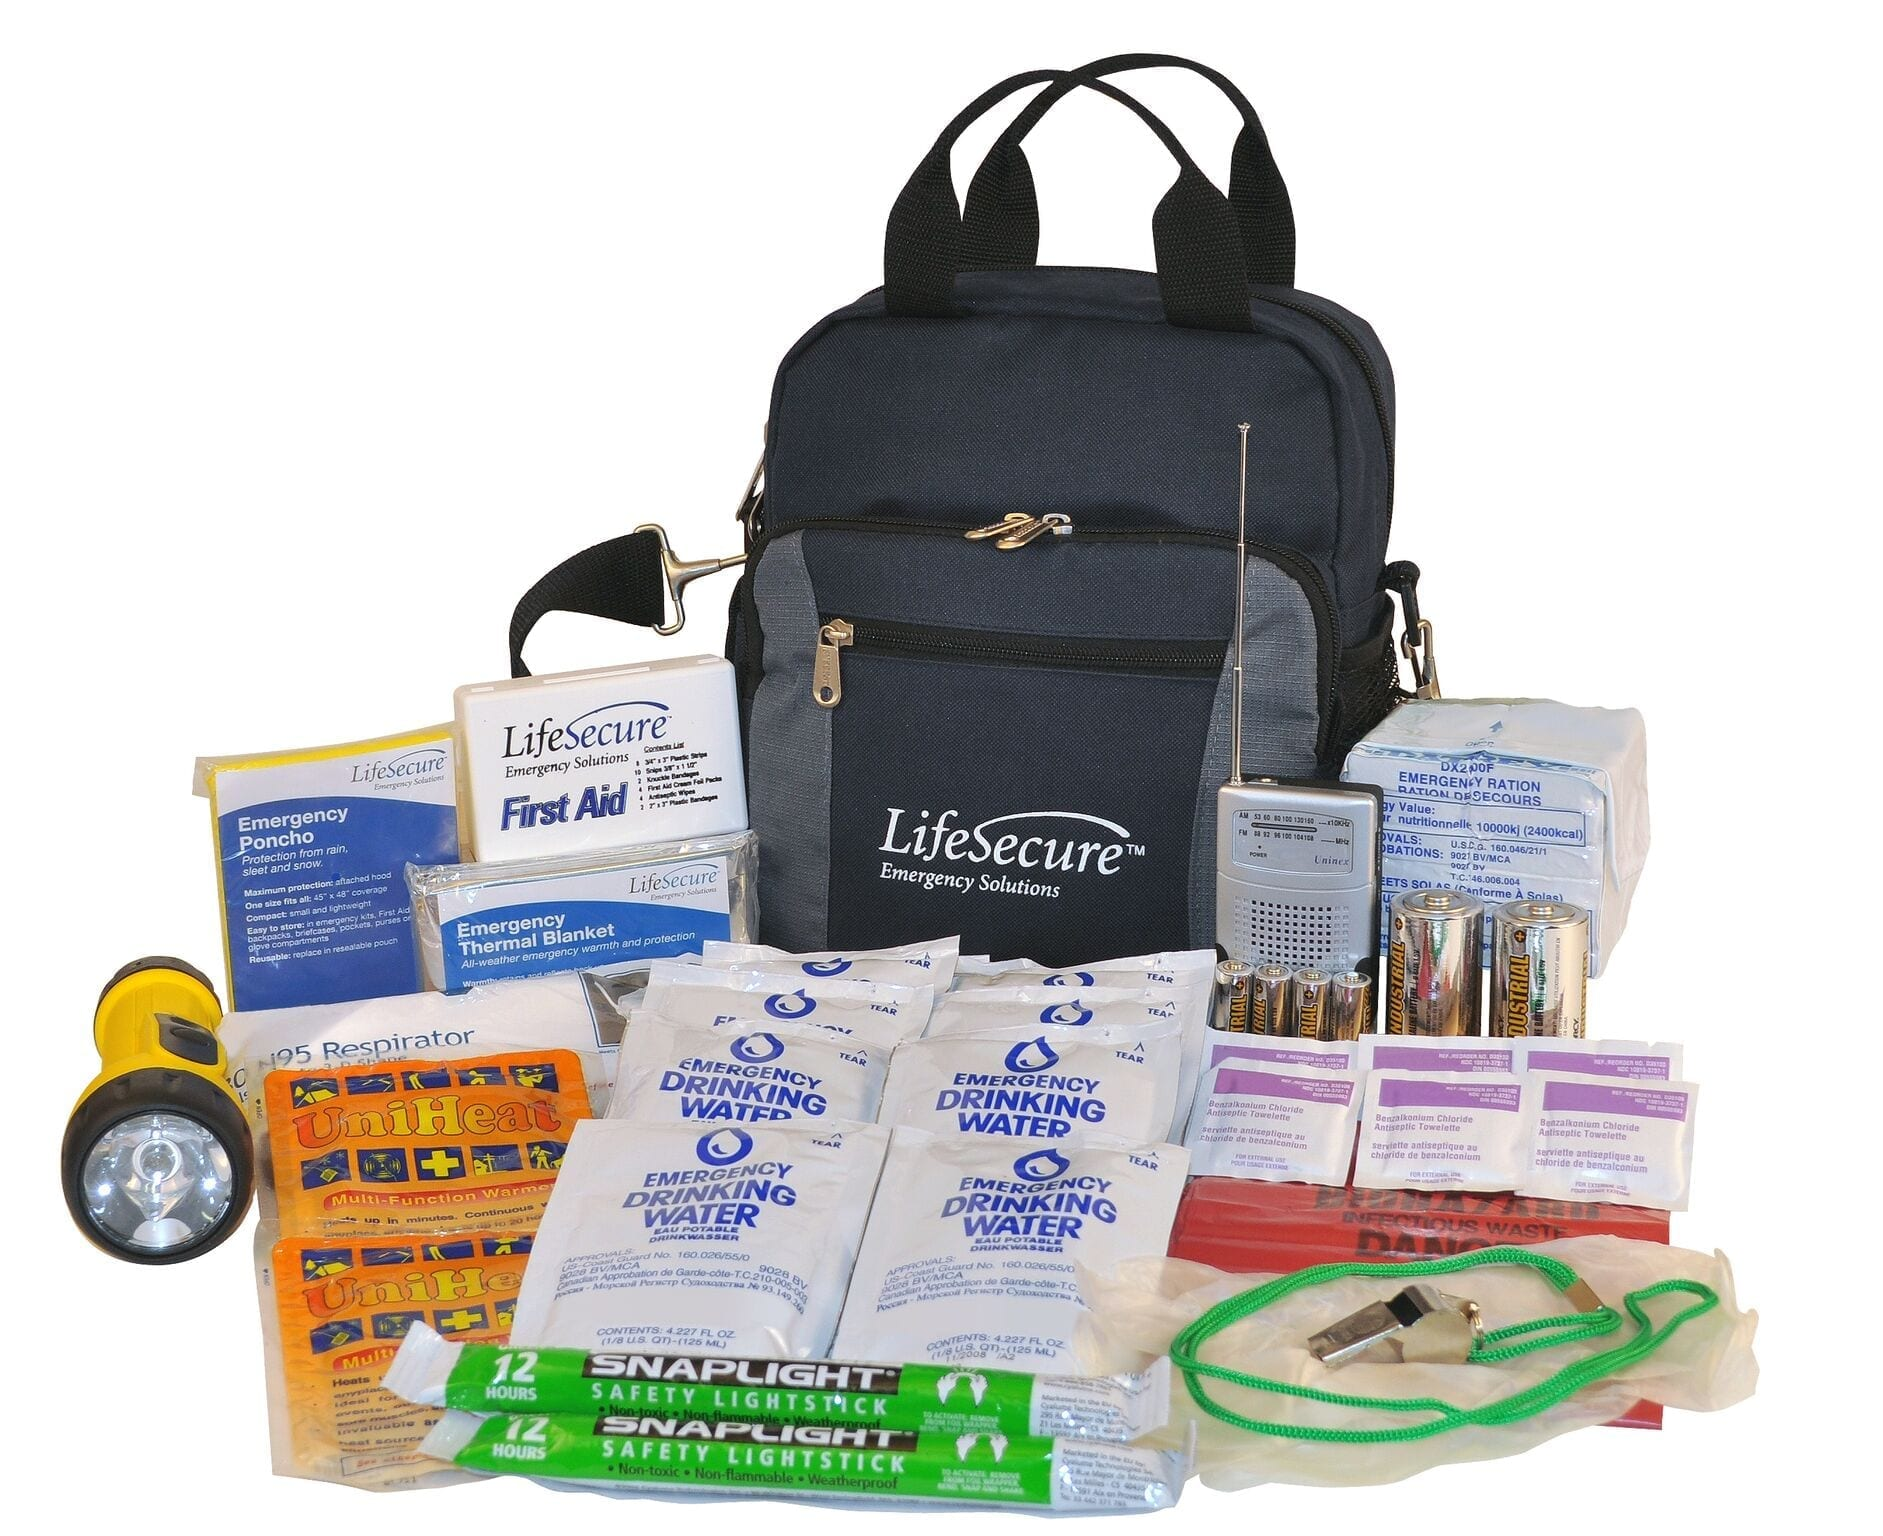 LifeSecure Plus Compact 3-DAY Emergency Survival Kit (81001)